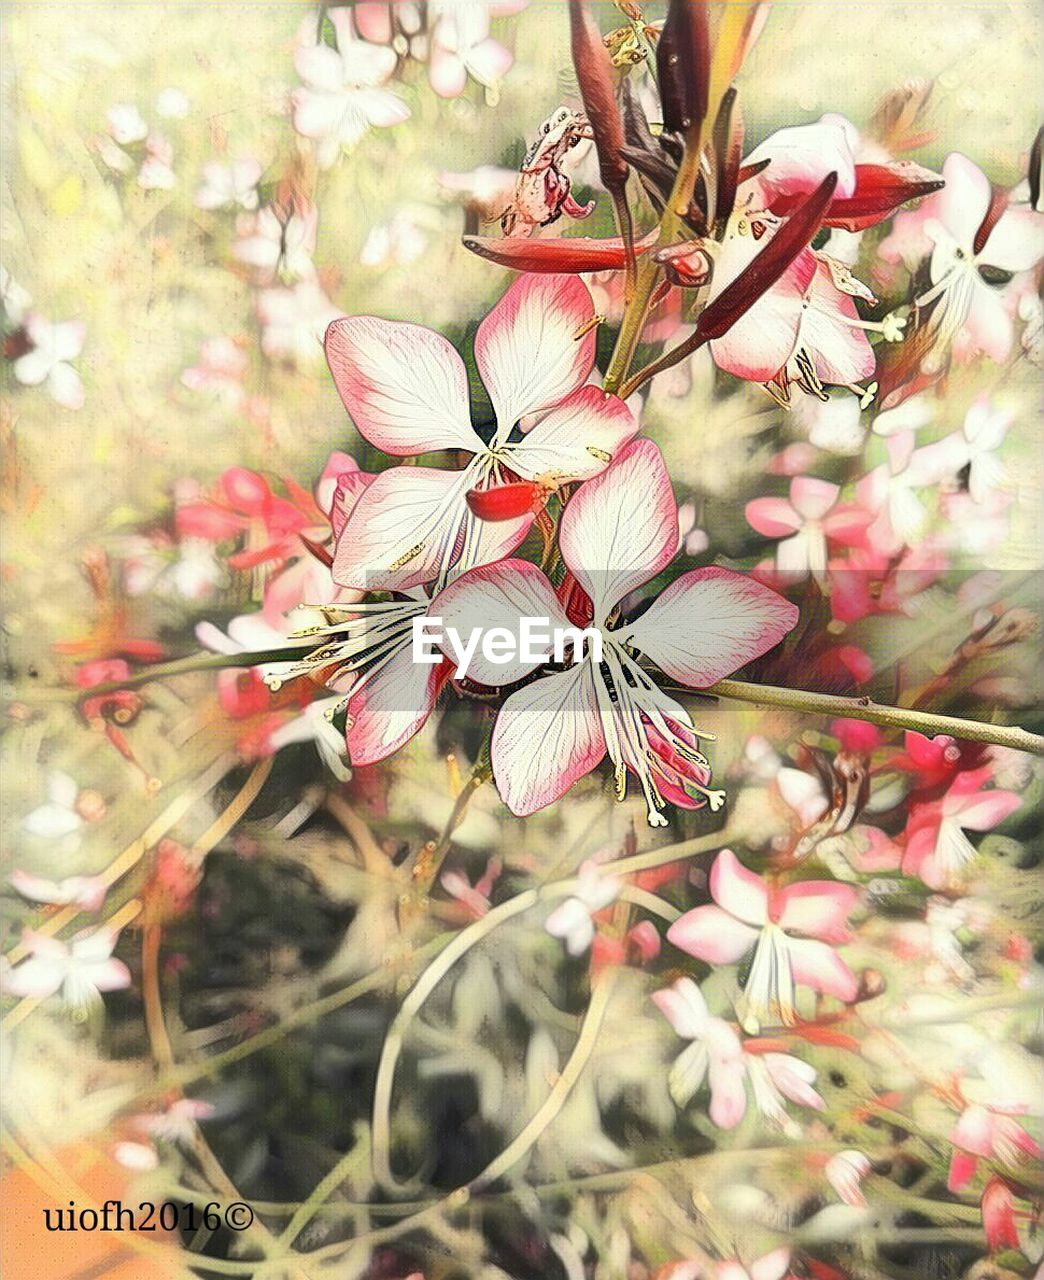 flower, growth, fragility, beauty in nature, blossom, nature, petal, tree, freshness, flower head, springtime, branch, no people, blooming, close-up, day, outdoors